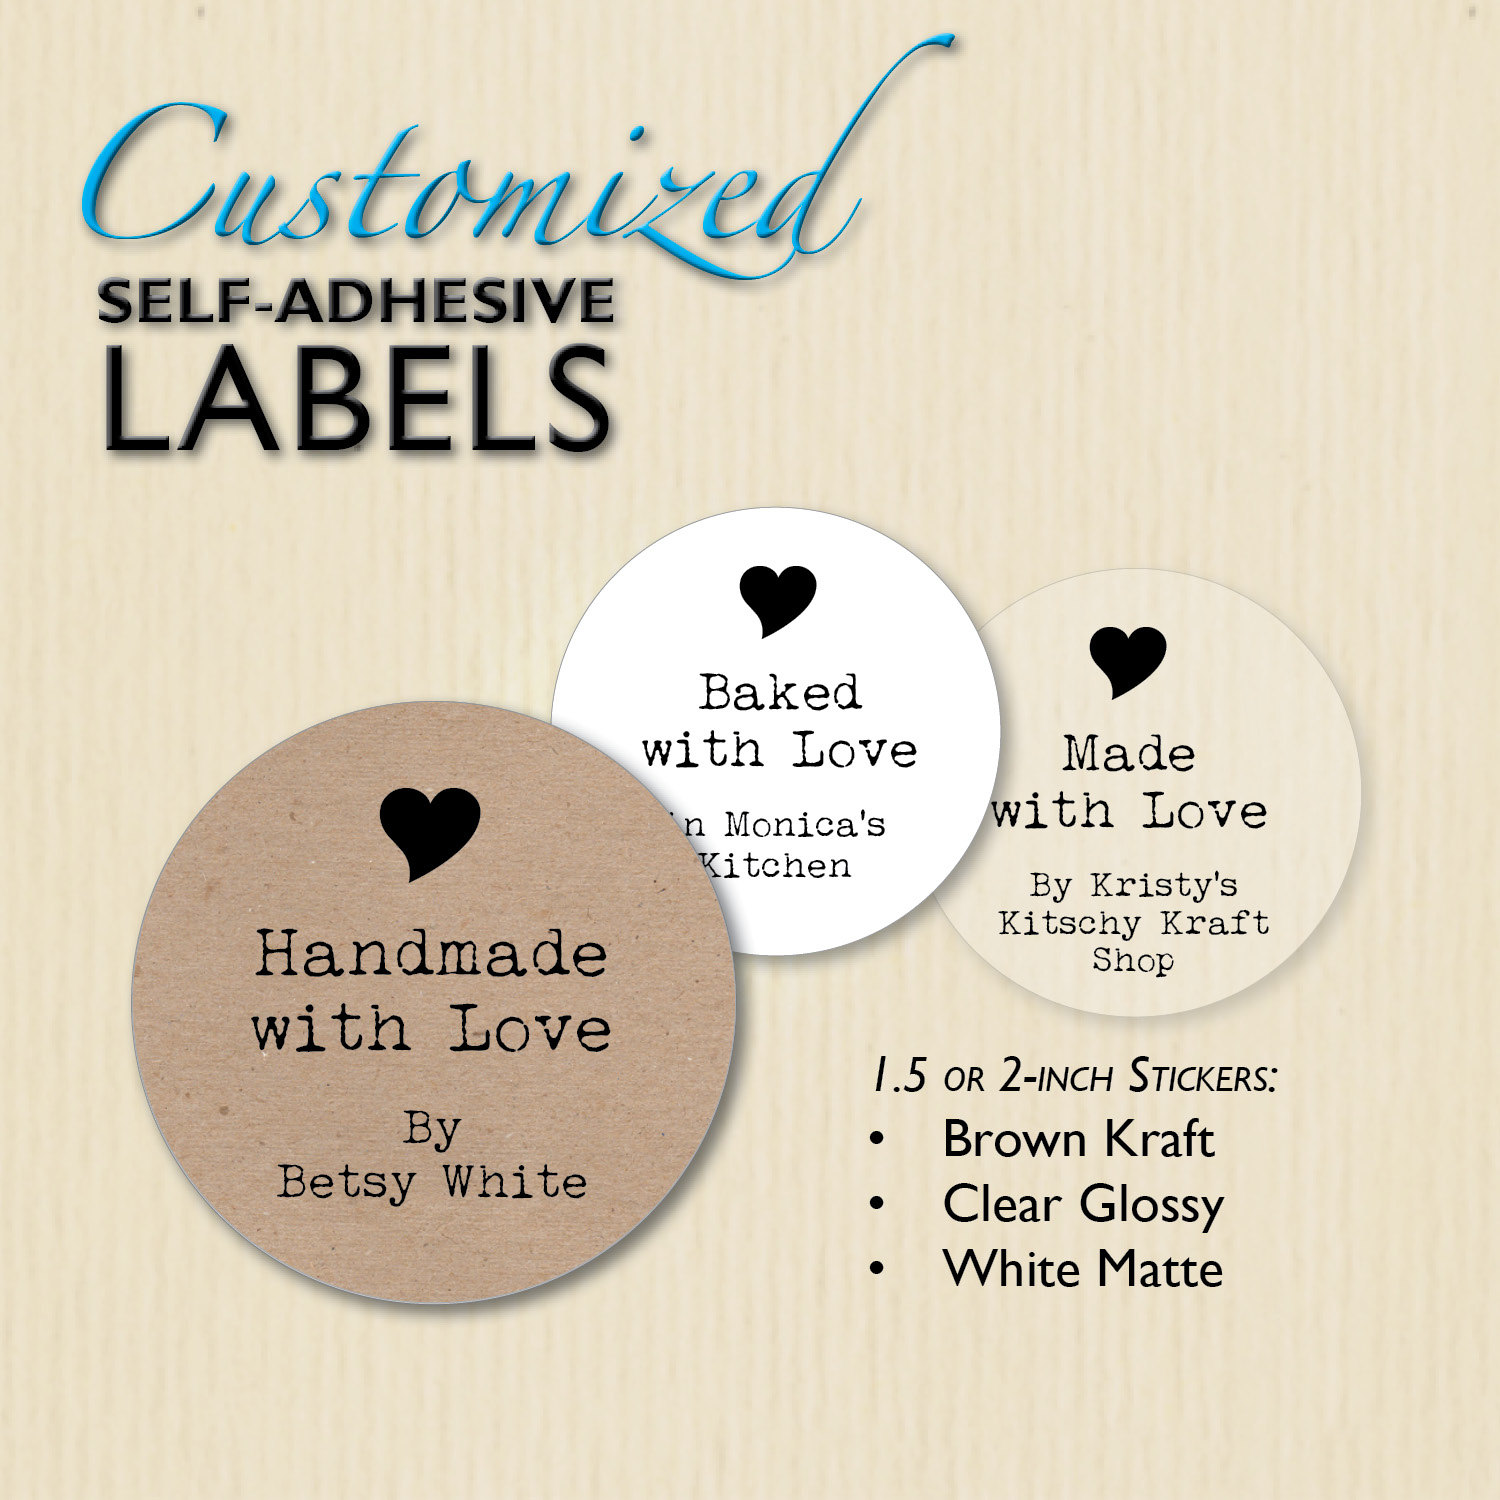 Custom Handmade with Love Stickers Clear Brown Kraft Made